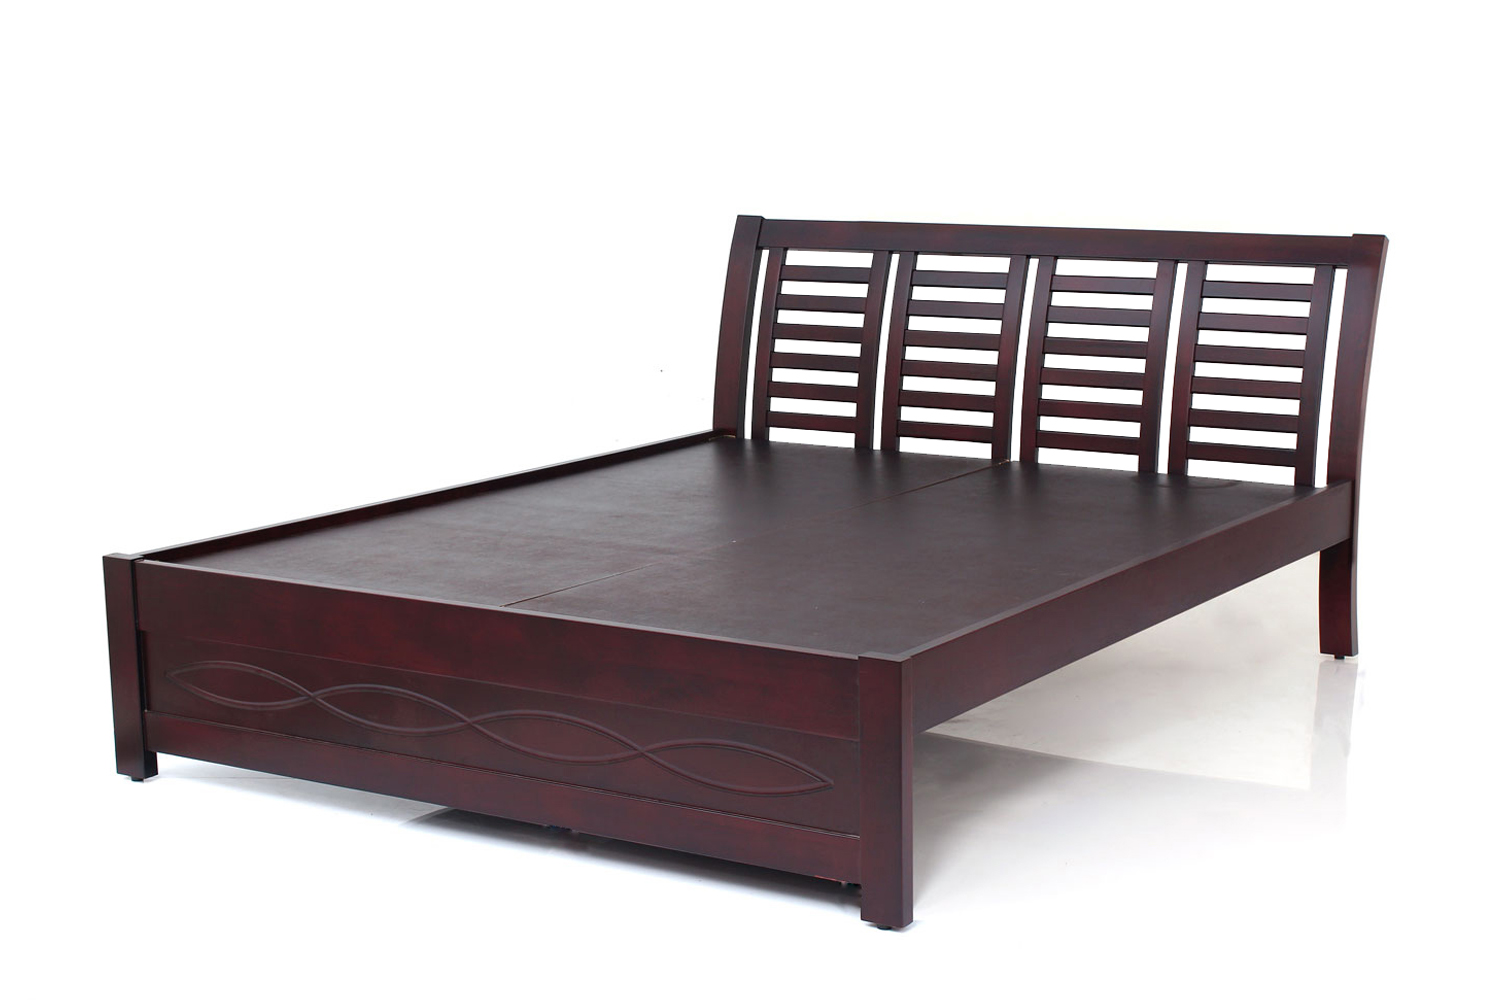 touchwood_taj_solidwood_queen_bed_rosewood_finish__5